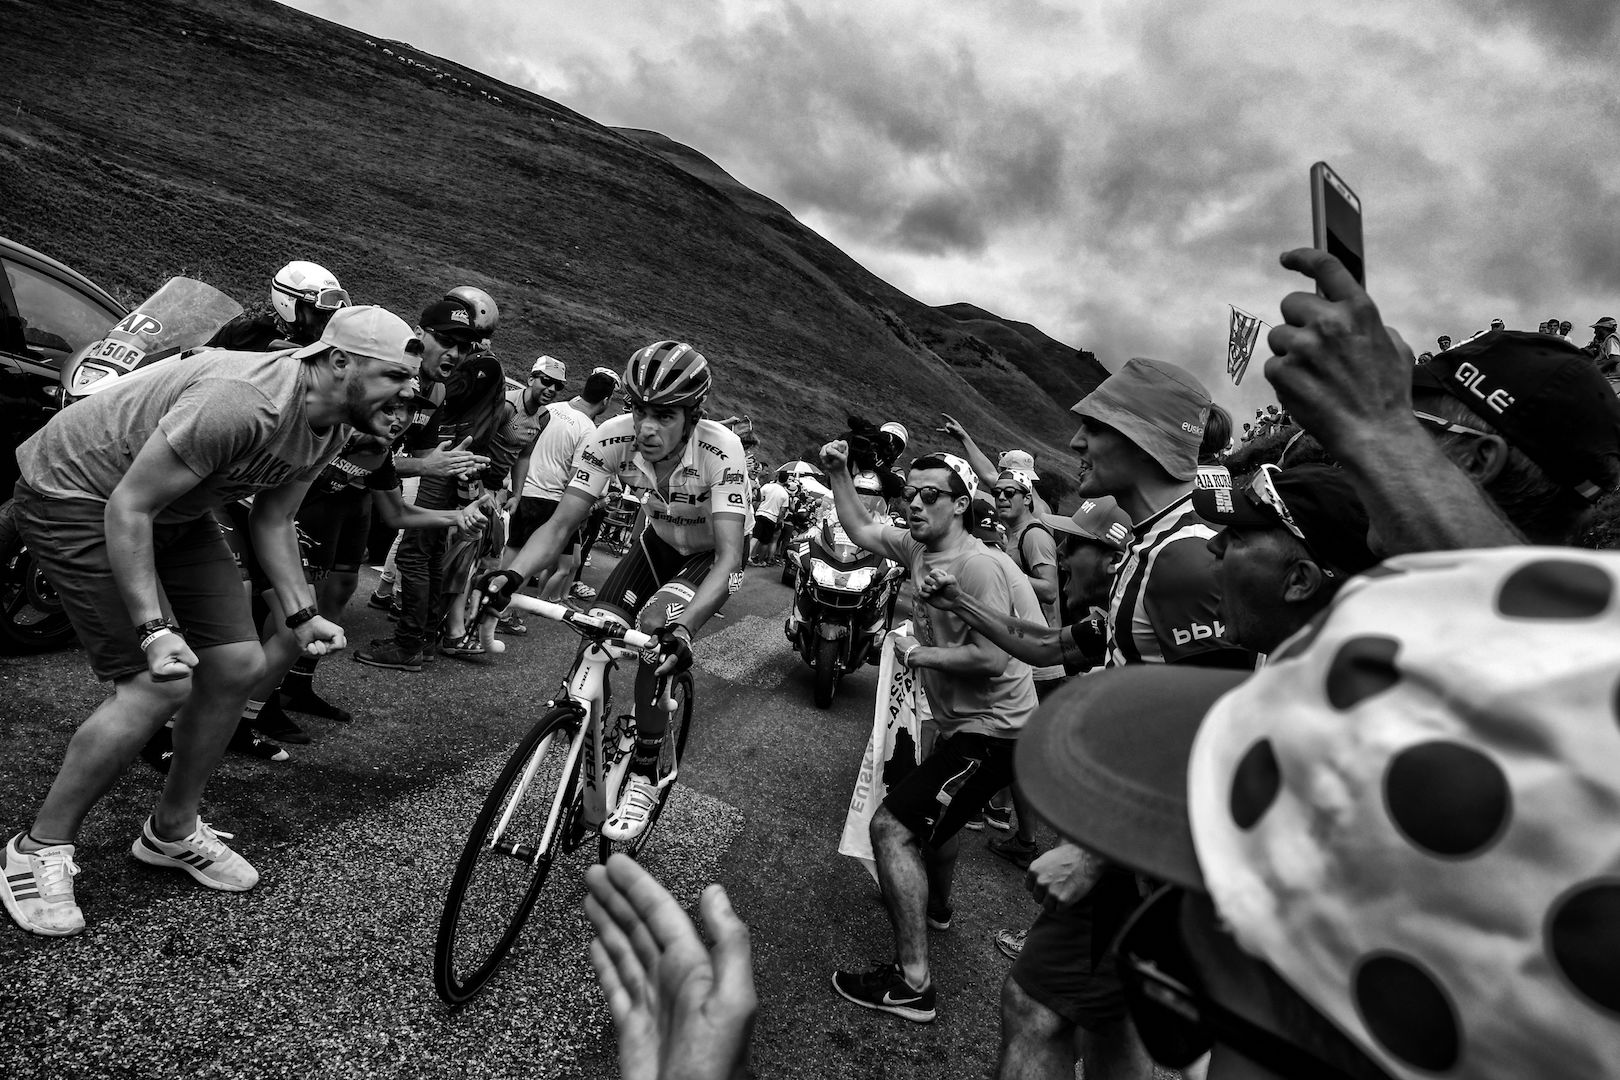 BLACK AND WHITE VERSION Spain's Alberto Contador rides in a breakaway as supporters cheer during the 214,5 km twelfth stage of the 104th edition of the Tour de France cycling race on July 13, 2017 between Pau and Peyragudes. / AFP PHOTO / JEFF PACHOUD (Photo credit should read JEFF PACHOUD/AFP/Getty Images)